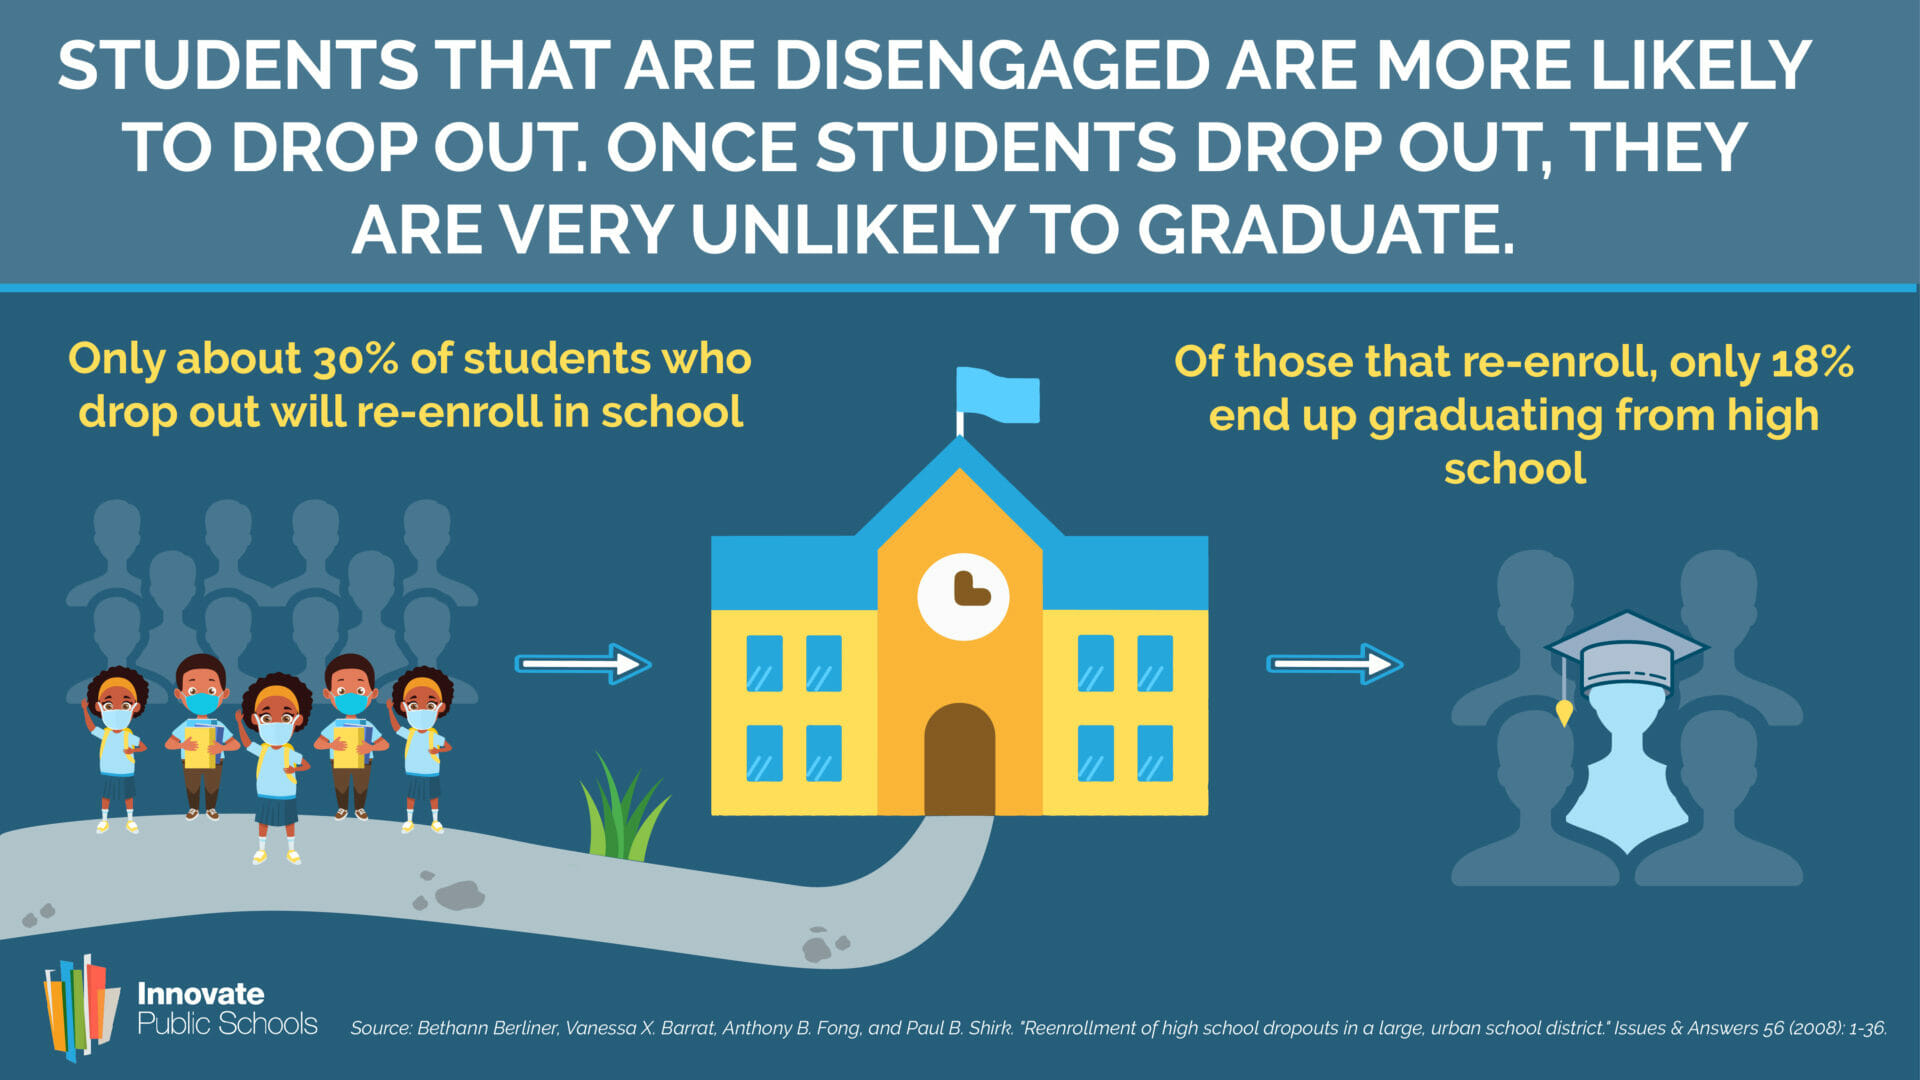 Disengaged Students More Likely to Drop Out